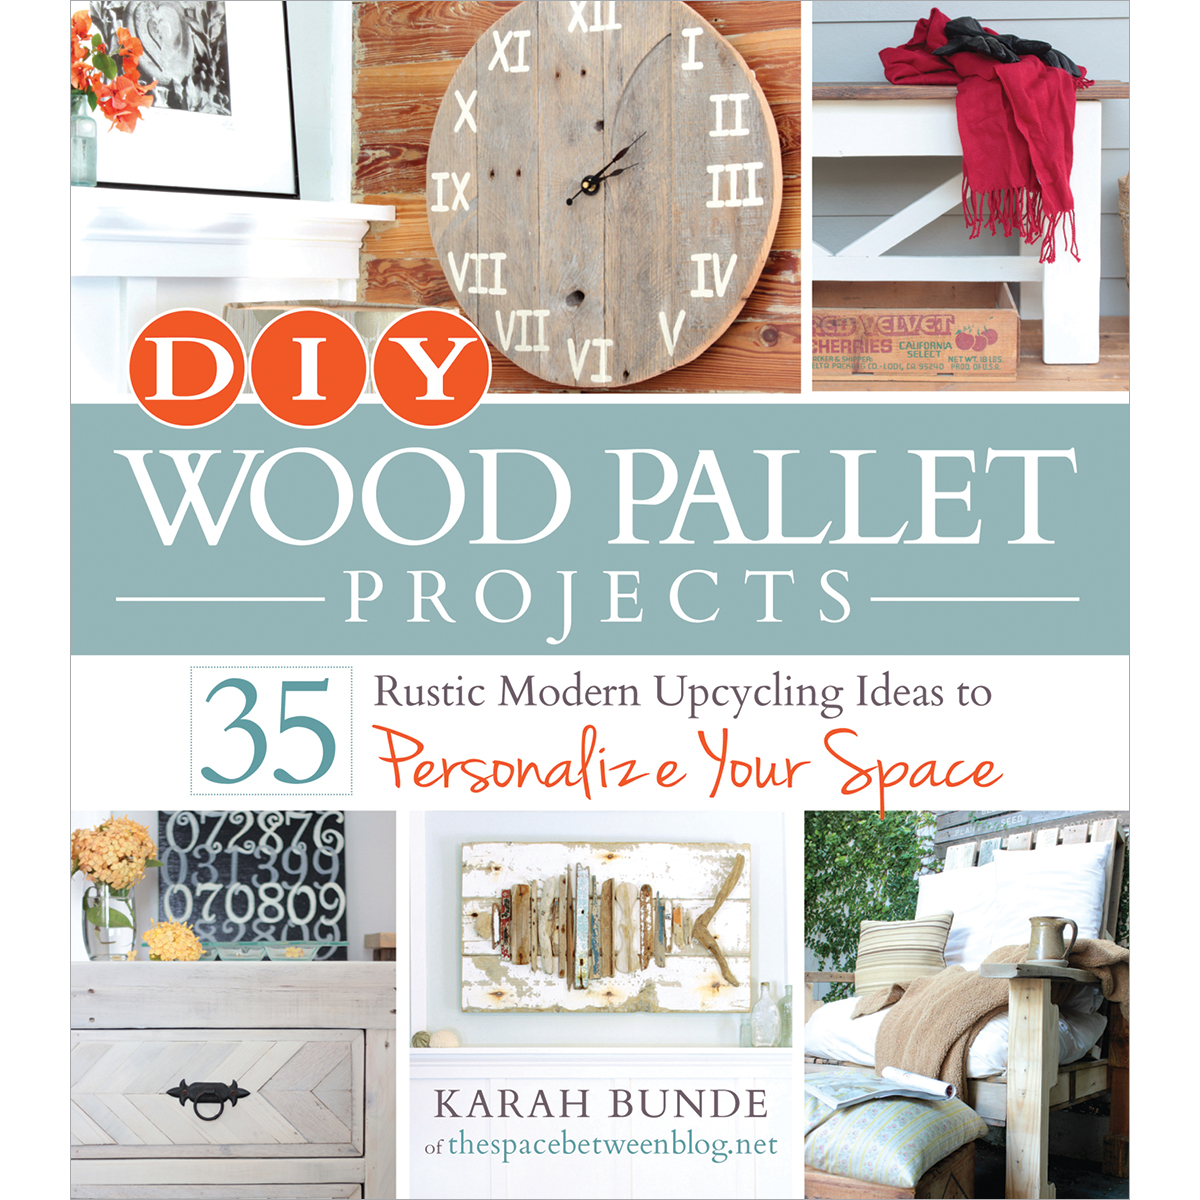 Adams Media Books DIY Wood Pallet Projects